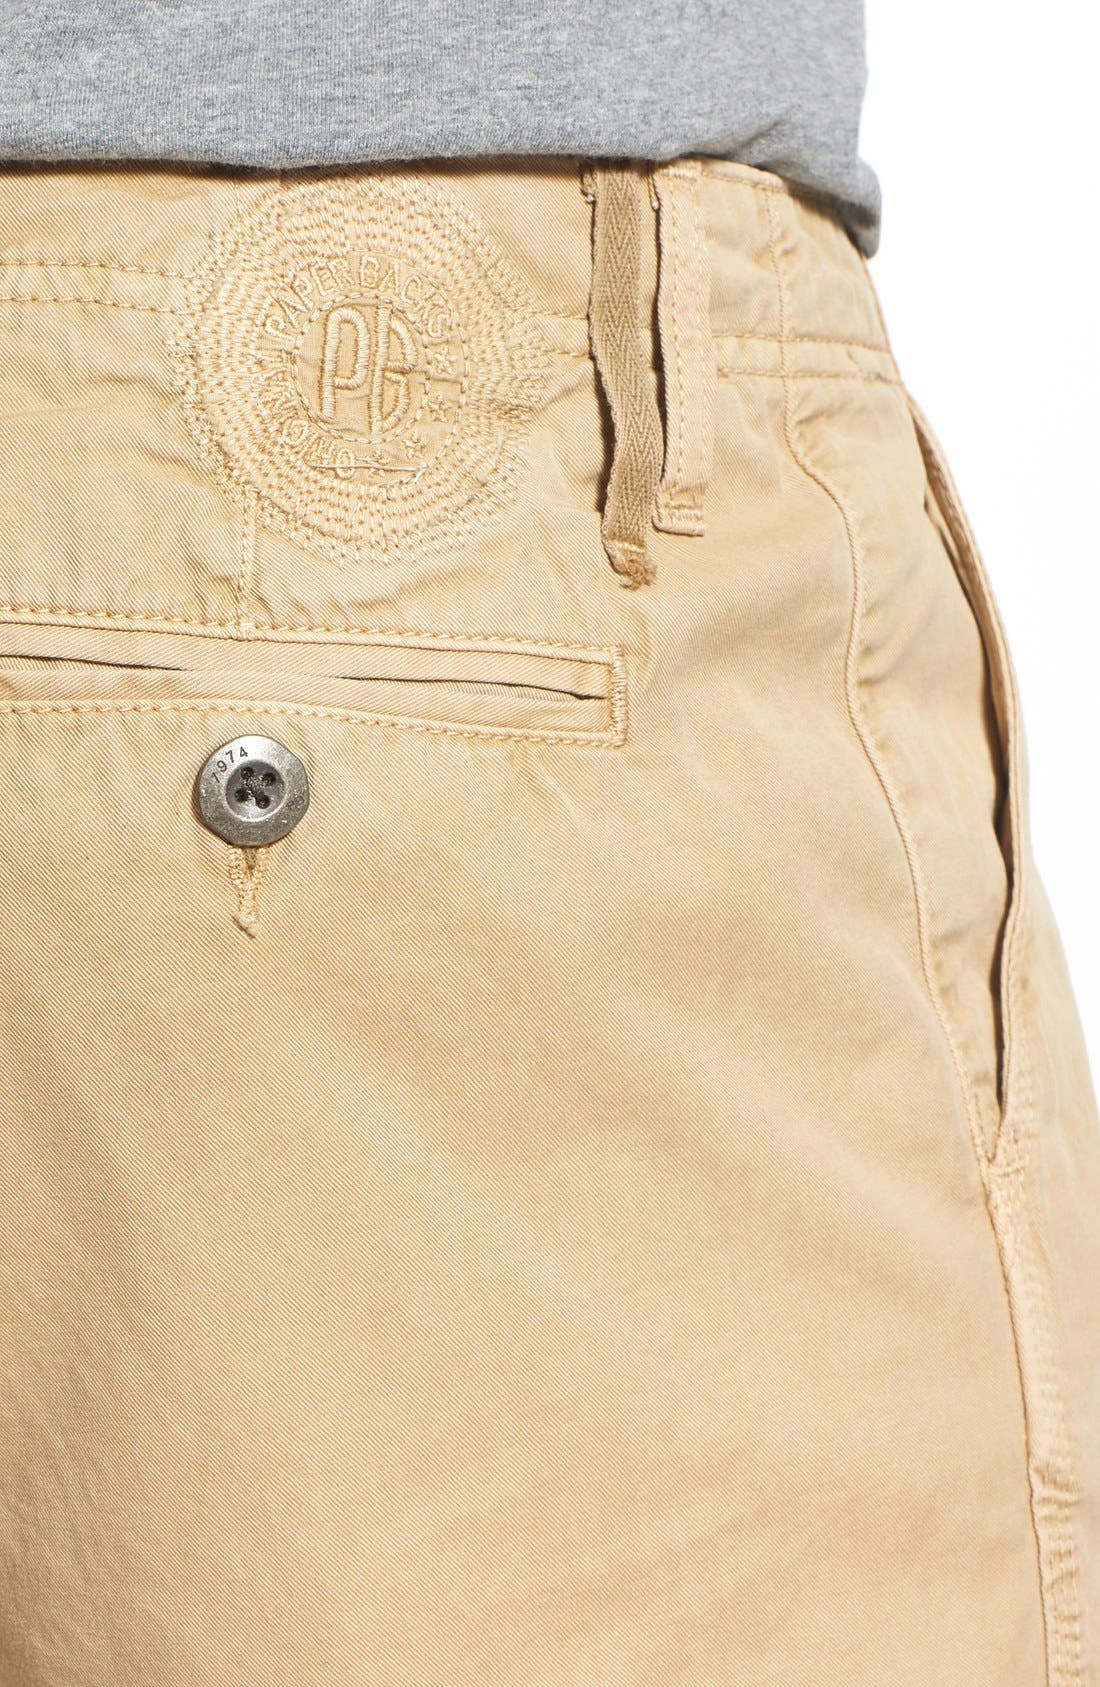 'Napa' Chino Shorts,                             Alternate thumbnail 48, color,